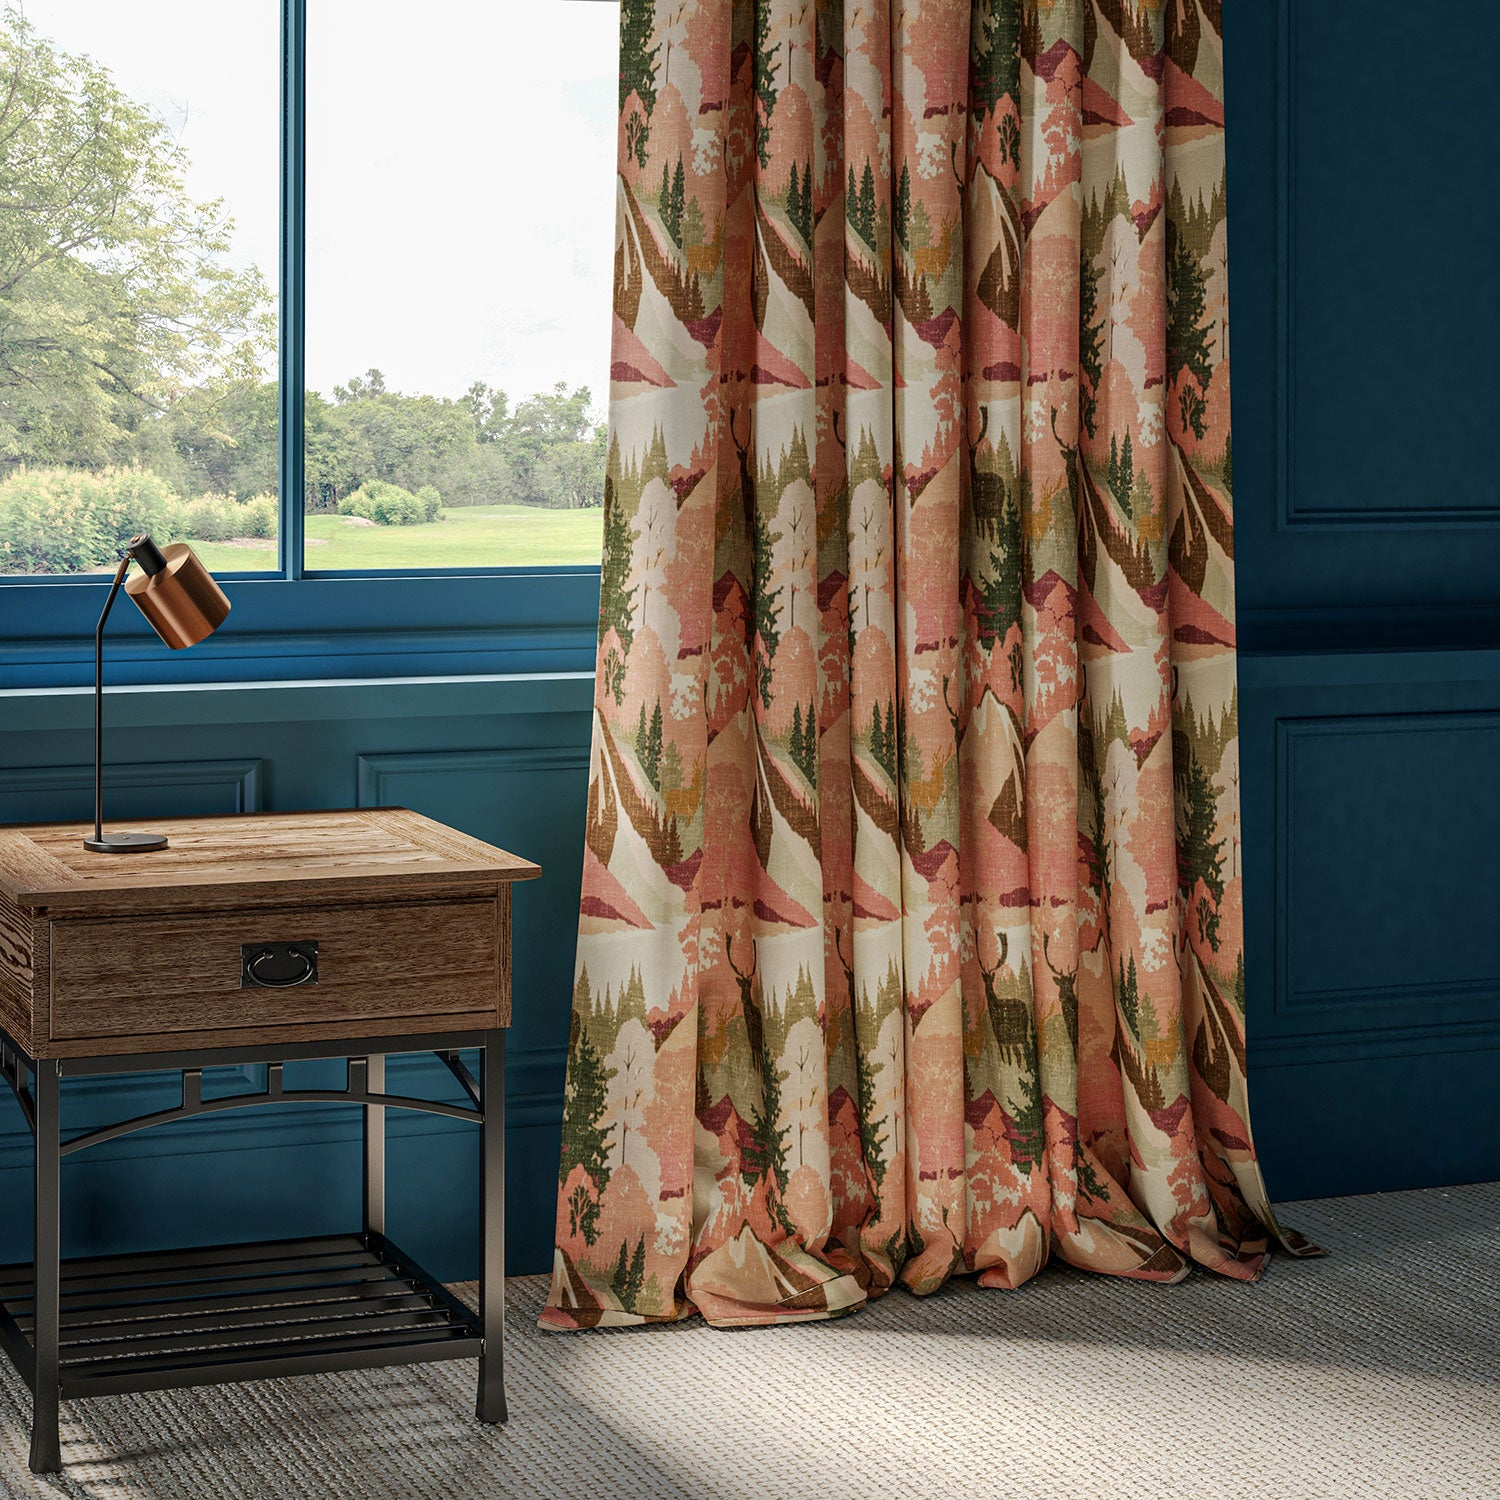 Curtains in a cotton velvet with terracotta and green mountain scene and green Stag design.